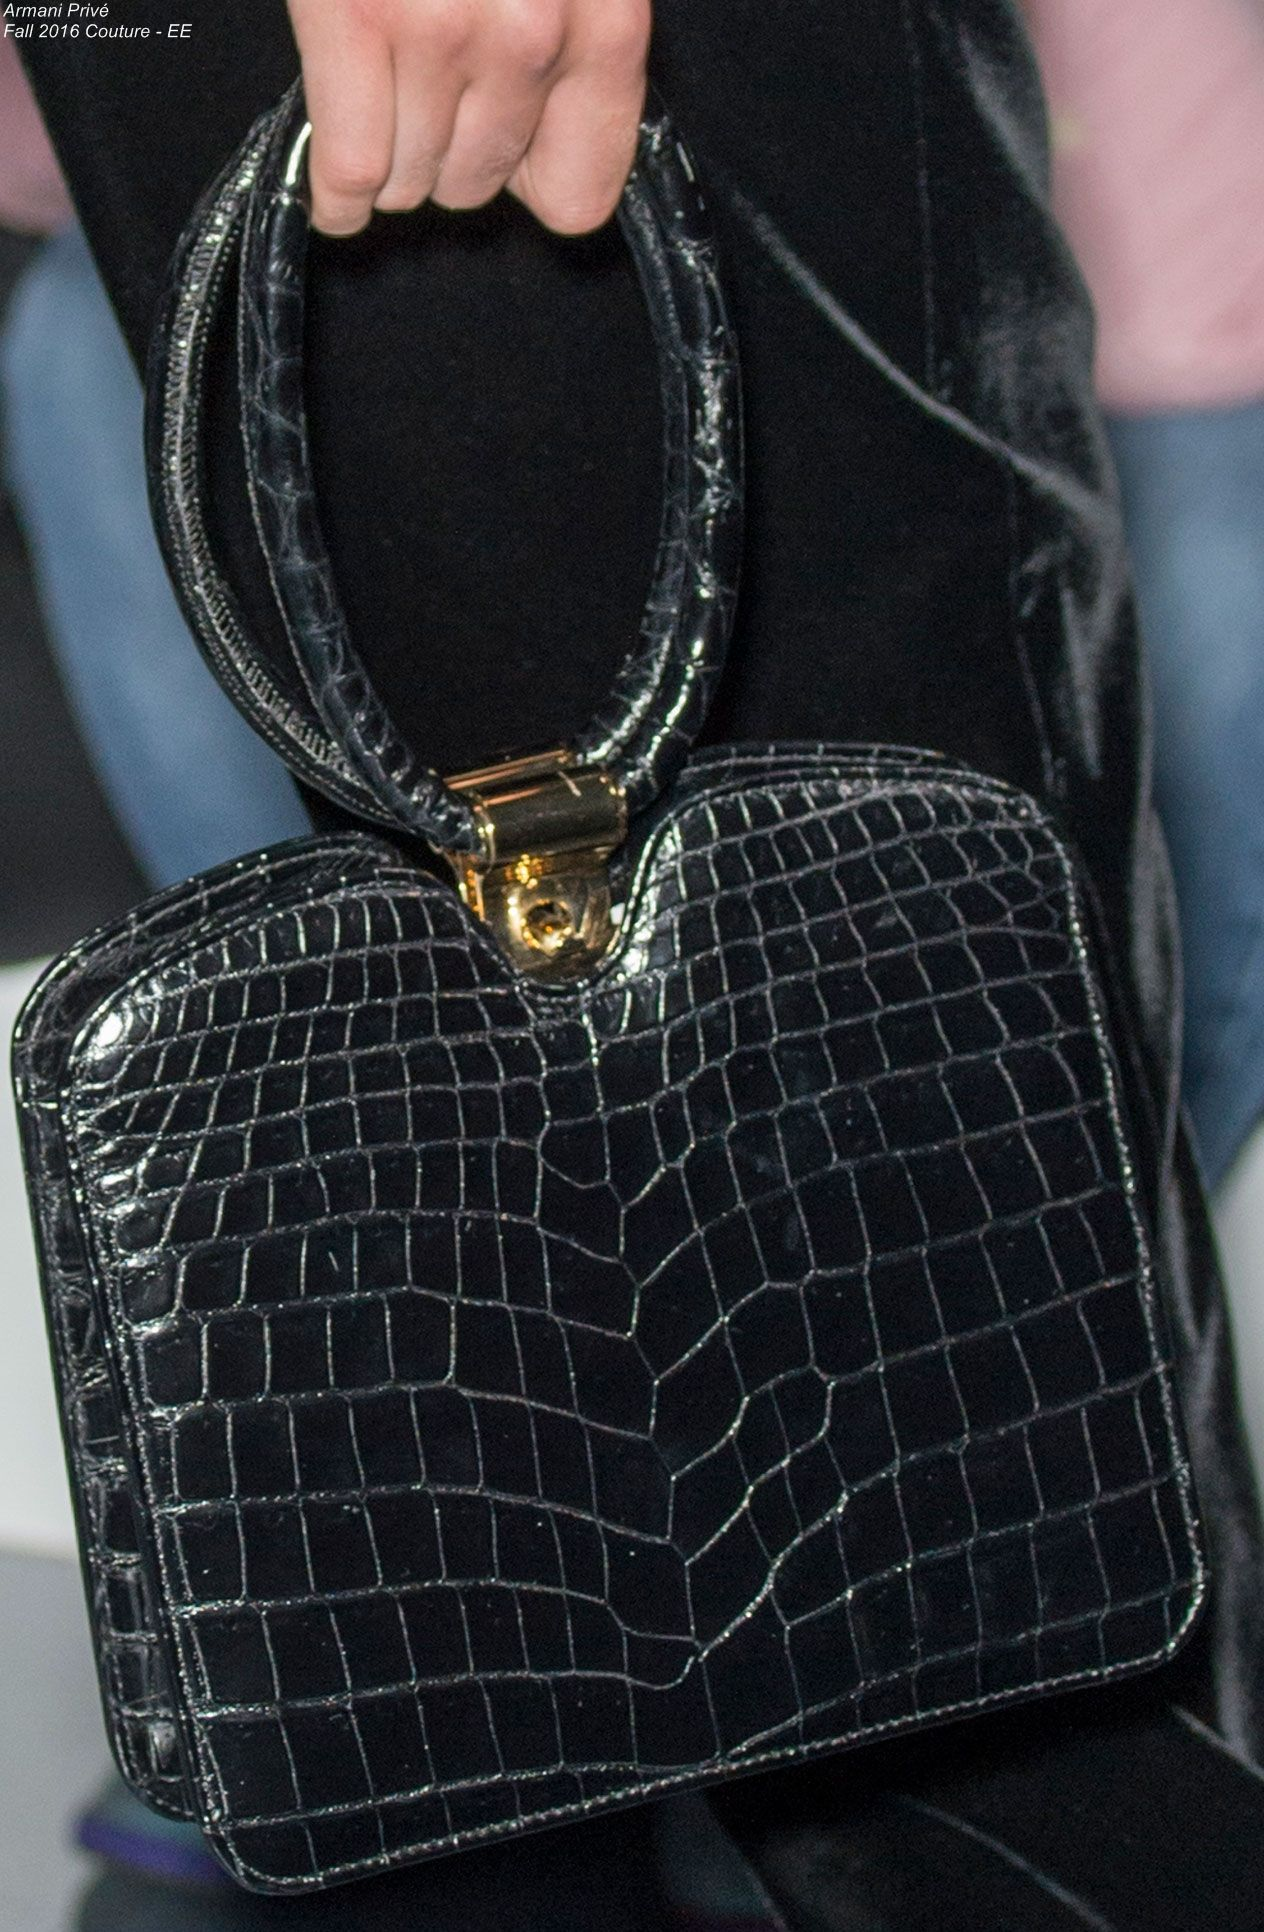 653a2d33909 Armani Privé Fall 2016 Couture - EE | Leather bag | Bags, Armani ...